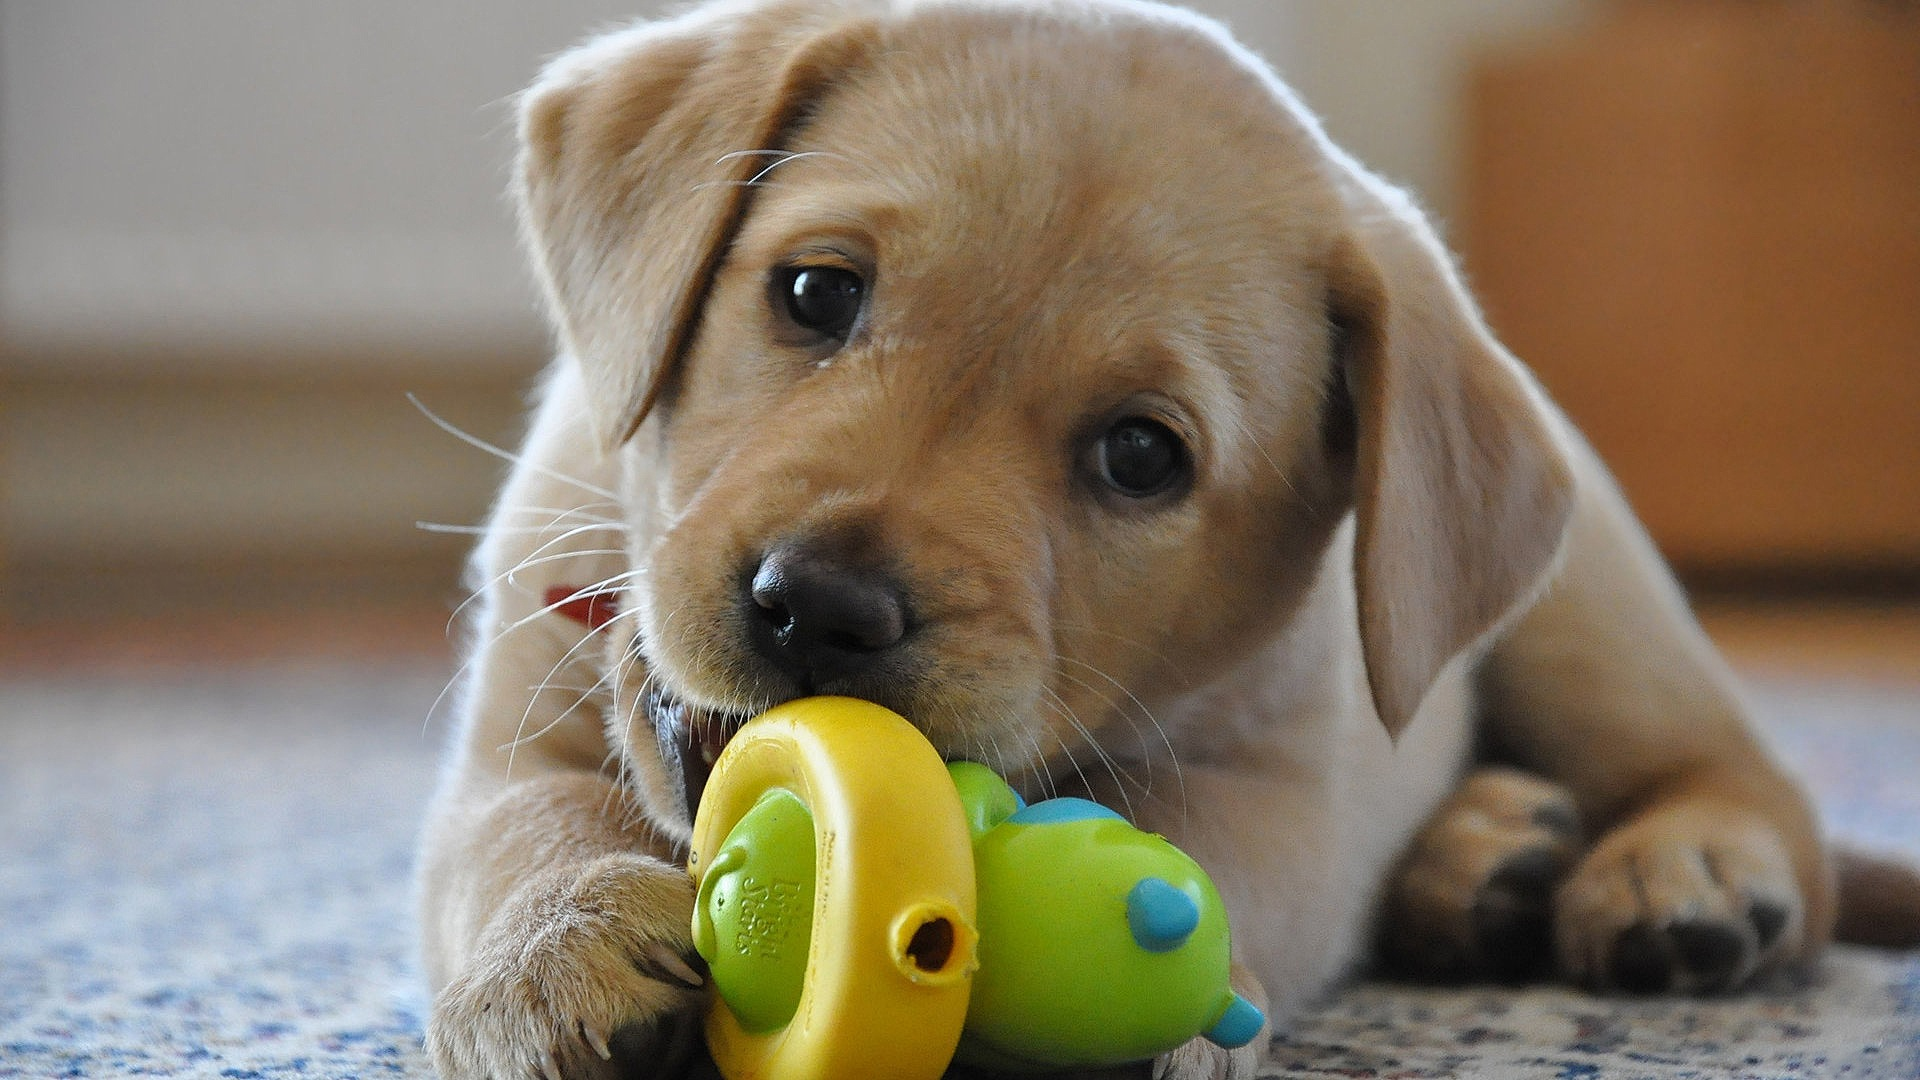 Puppy Golden Labrador Retriever Playing With Toy